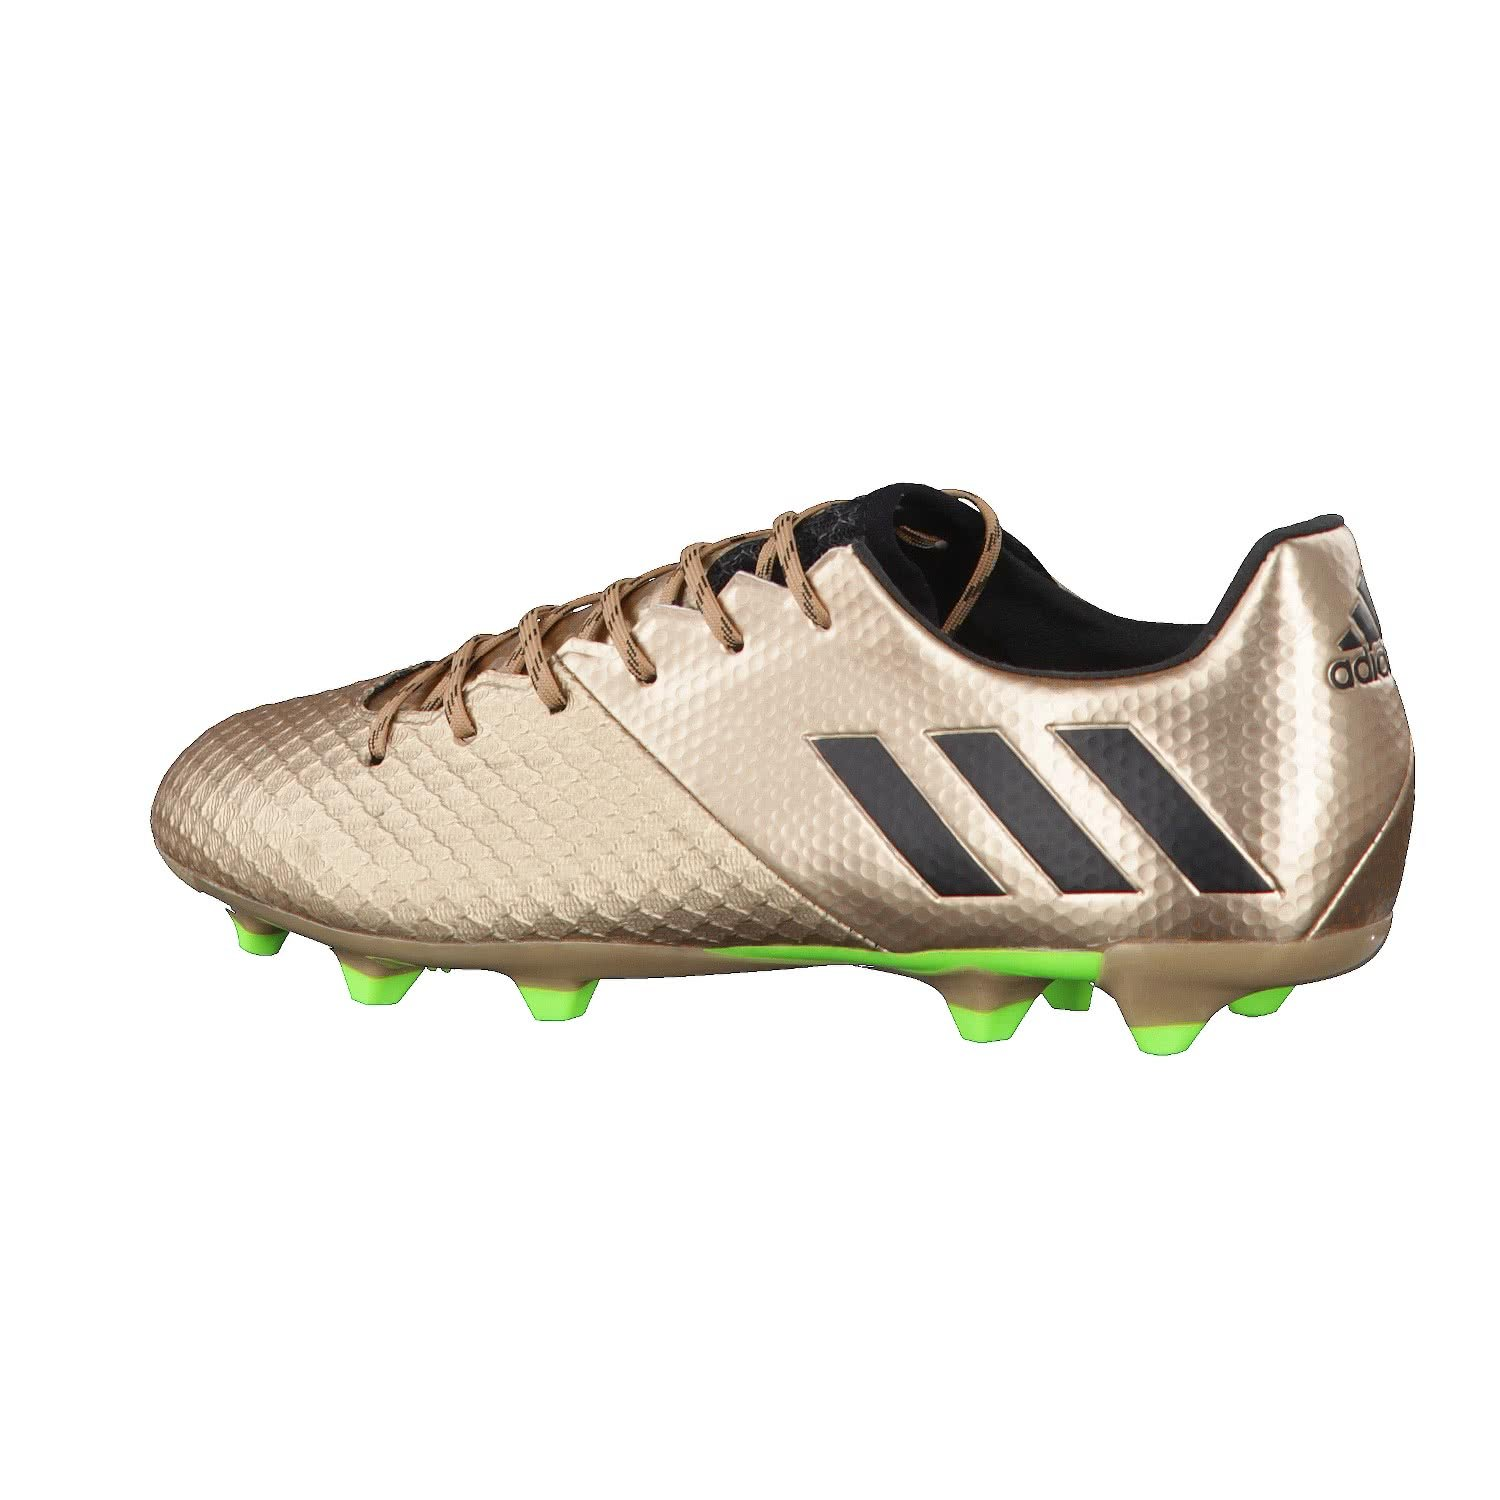 599366fdf adidas Messi 16.2 TF - Football Boots from the Messi Line for Men ...